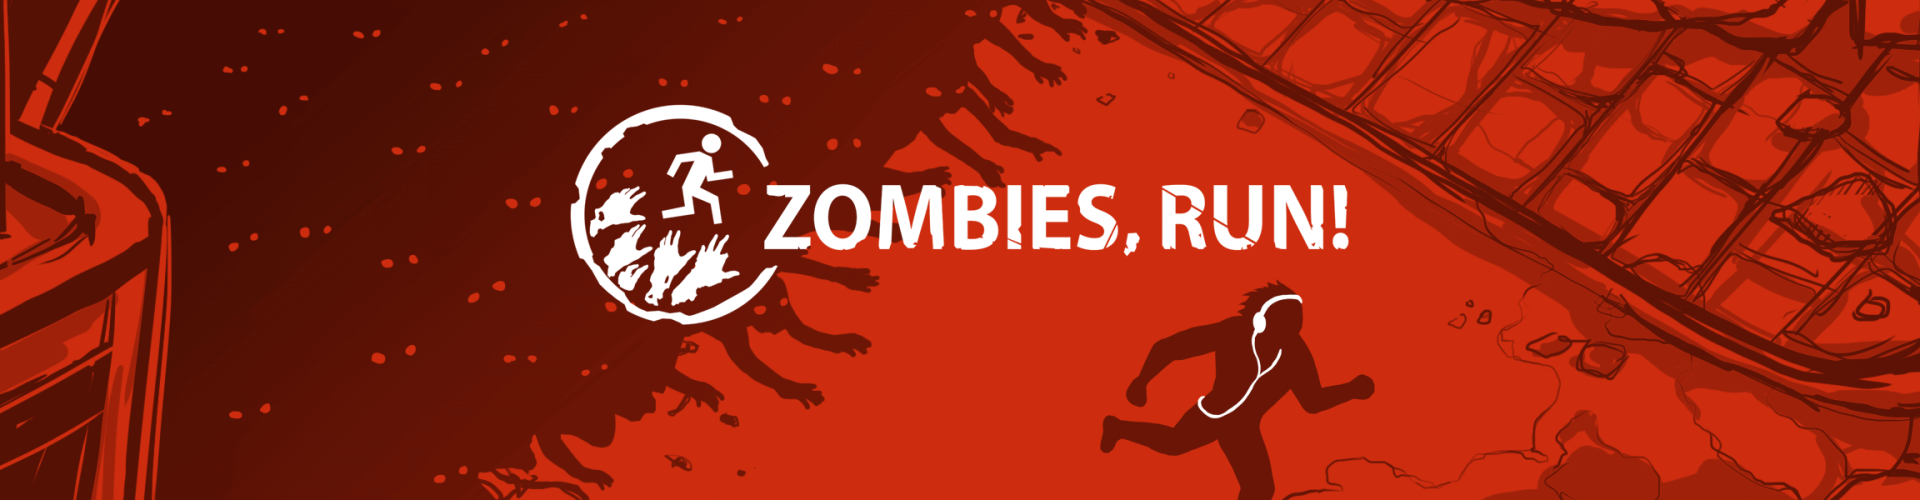 Zombie Run Android